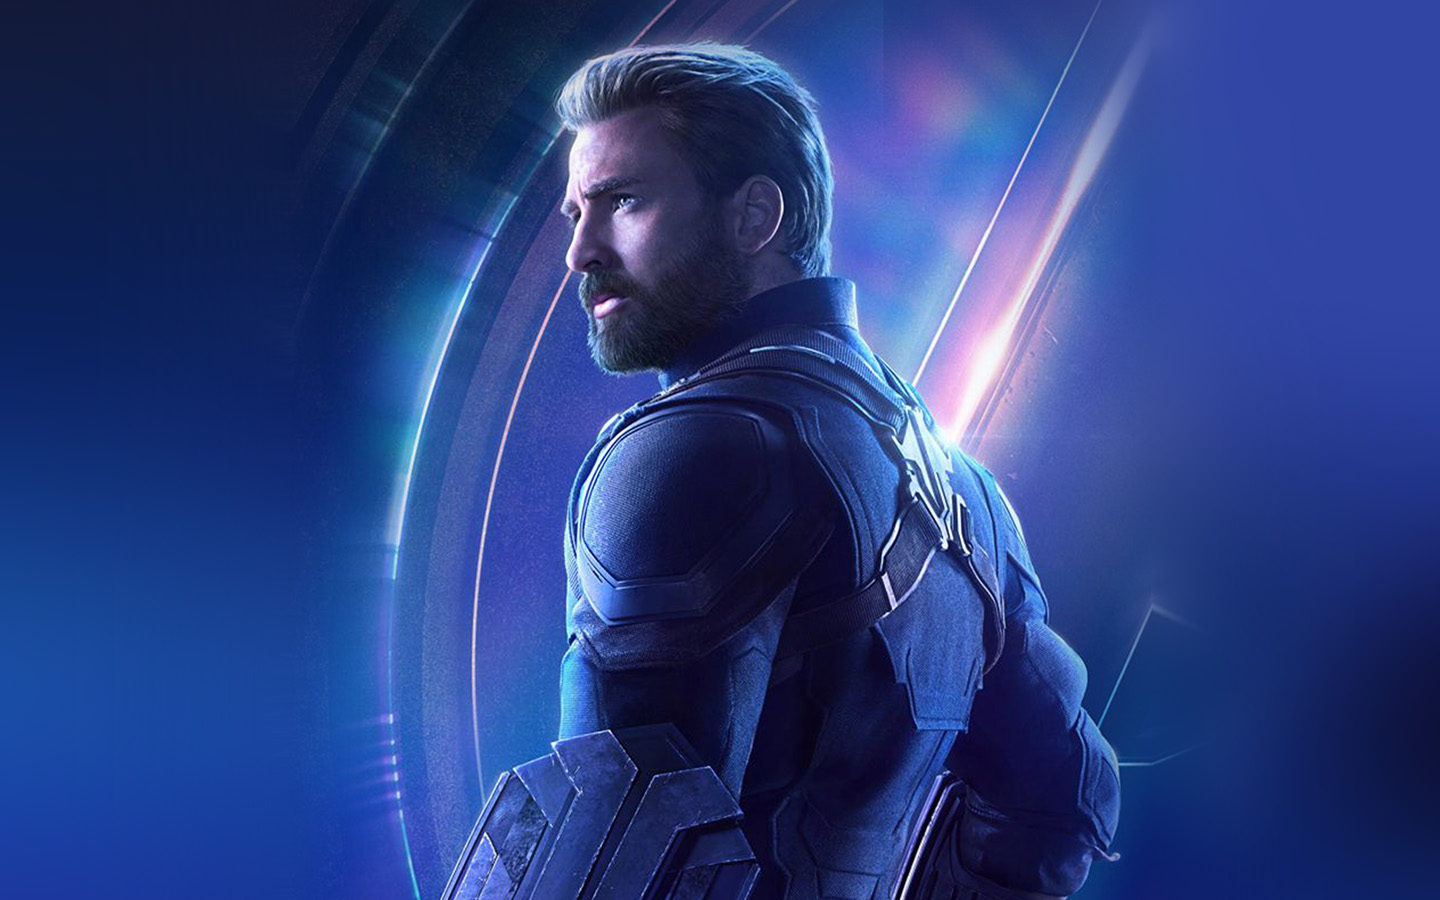 Hd Ipad Retina Wallpapers Be86 Captain America Avengers Hero Chris Evans Film Art